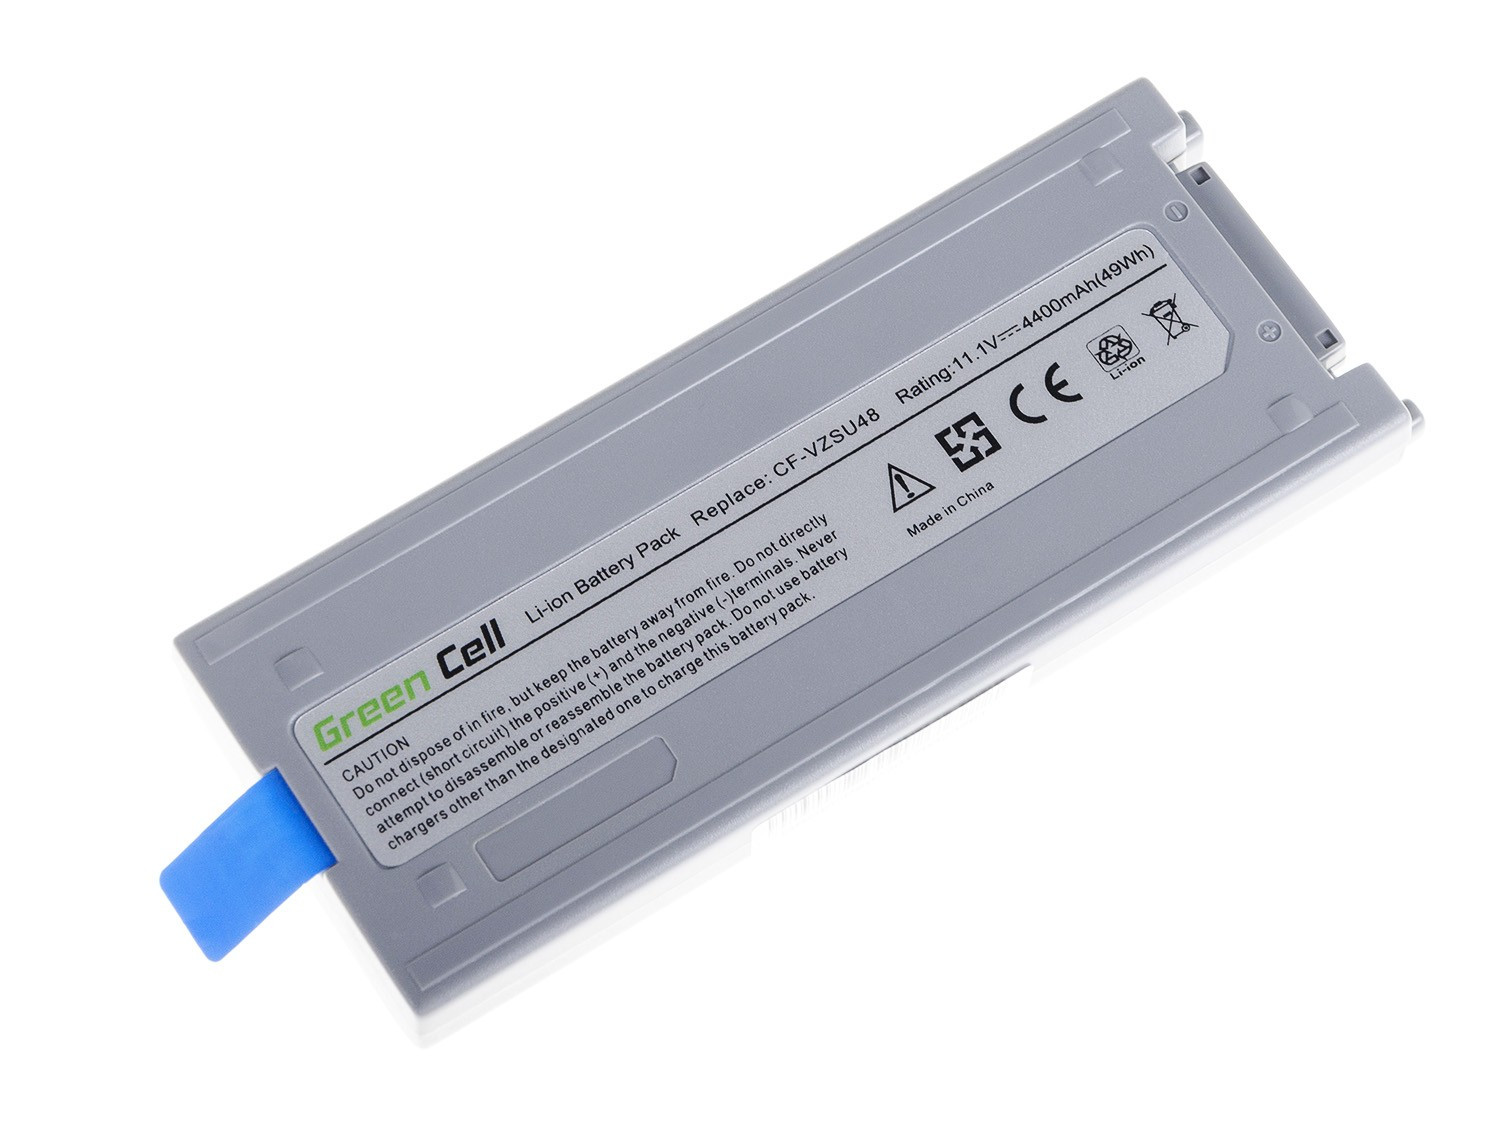 Green Cell Battery for Panasonic Toughbook CF-19 (grey) / 11,1V 4400mAh